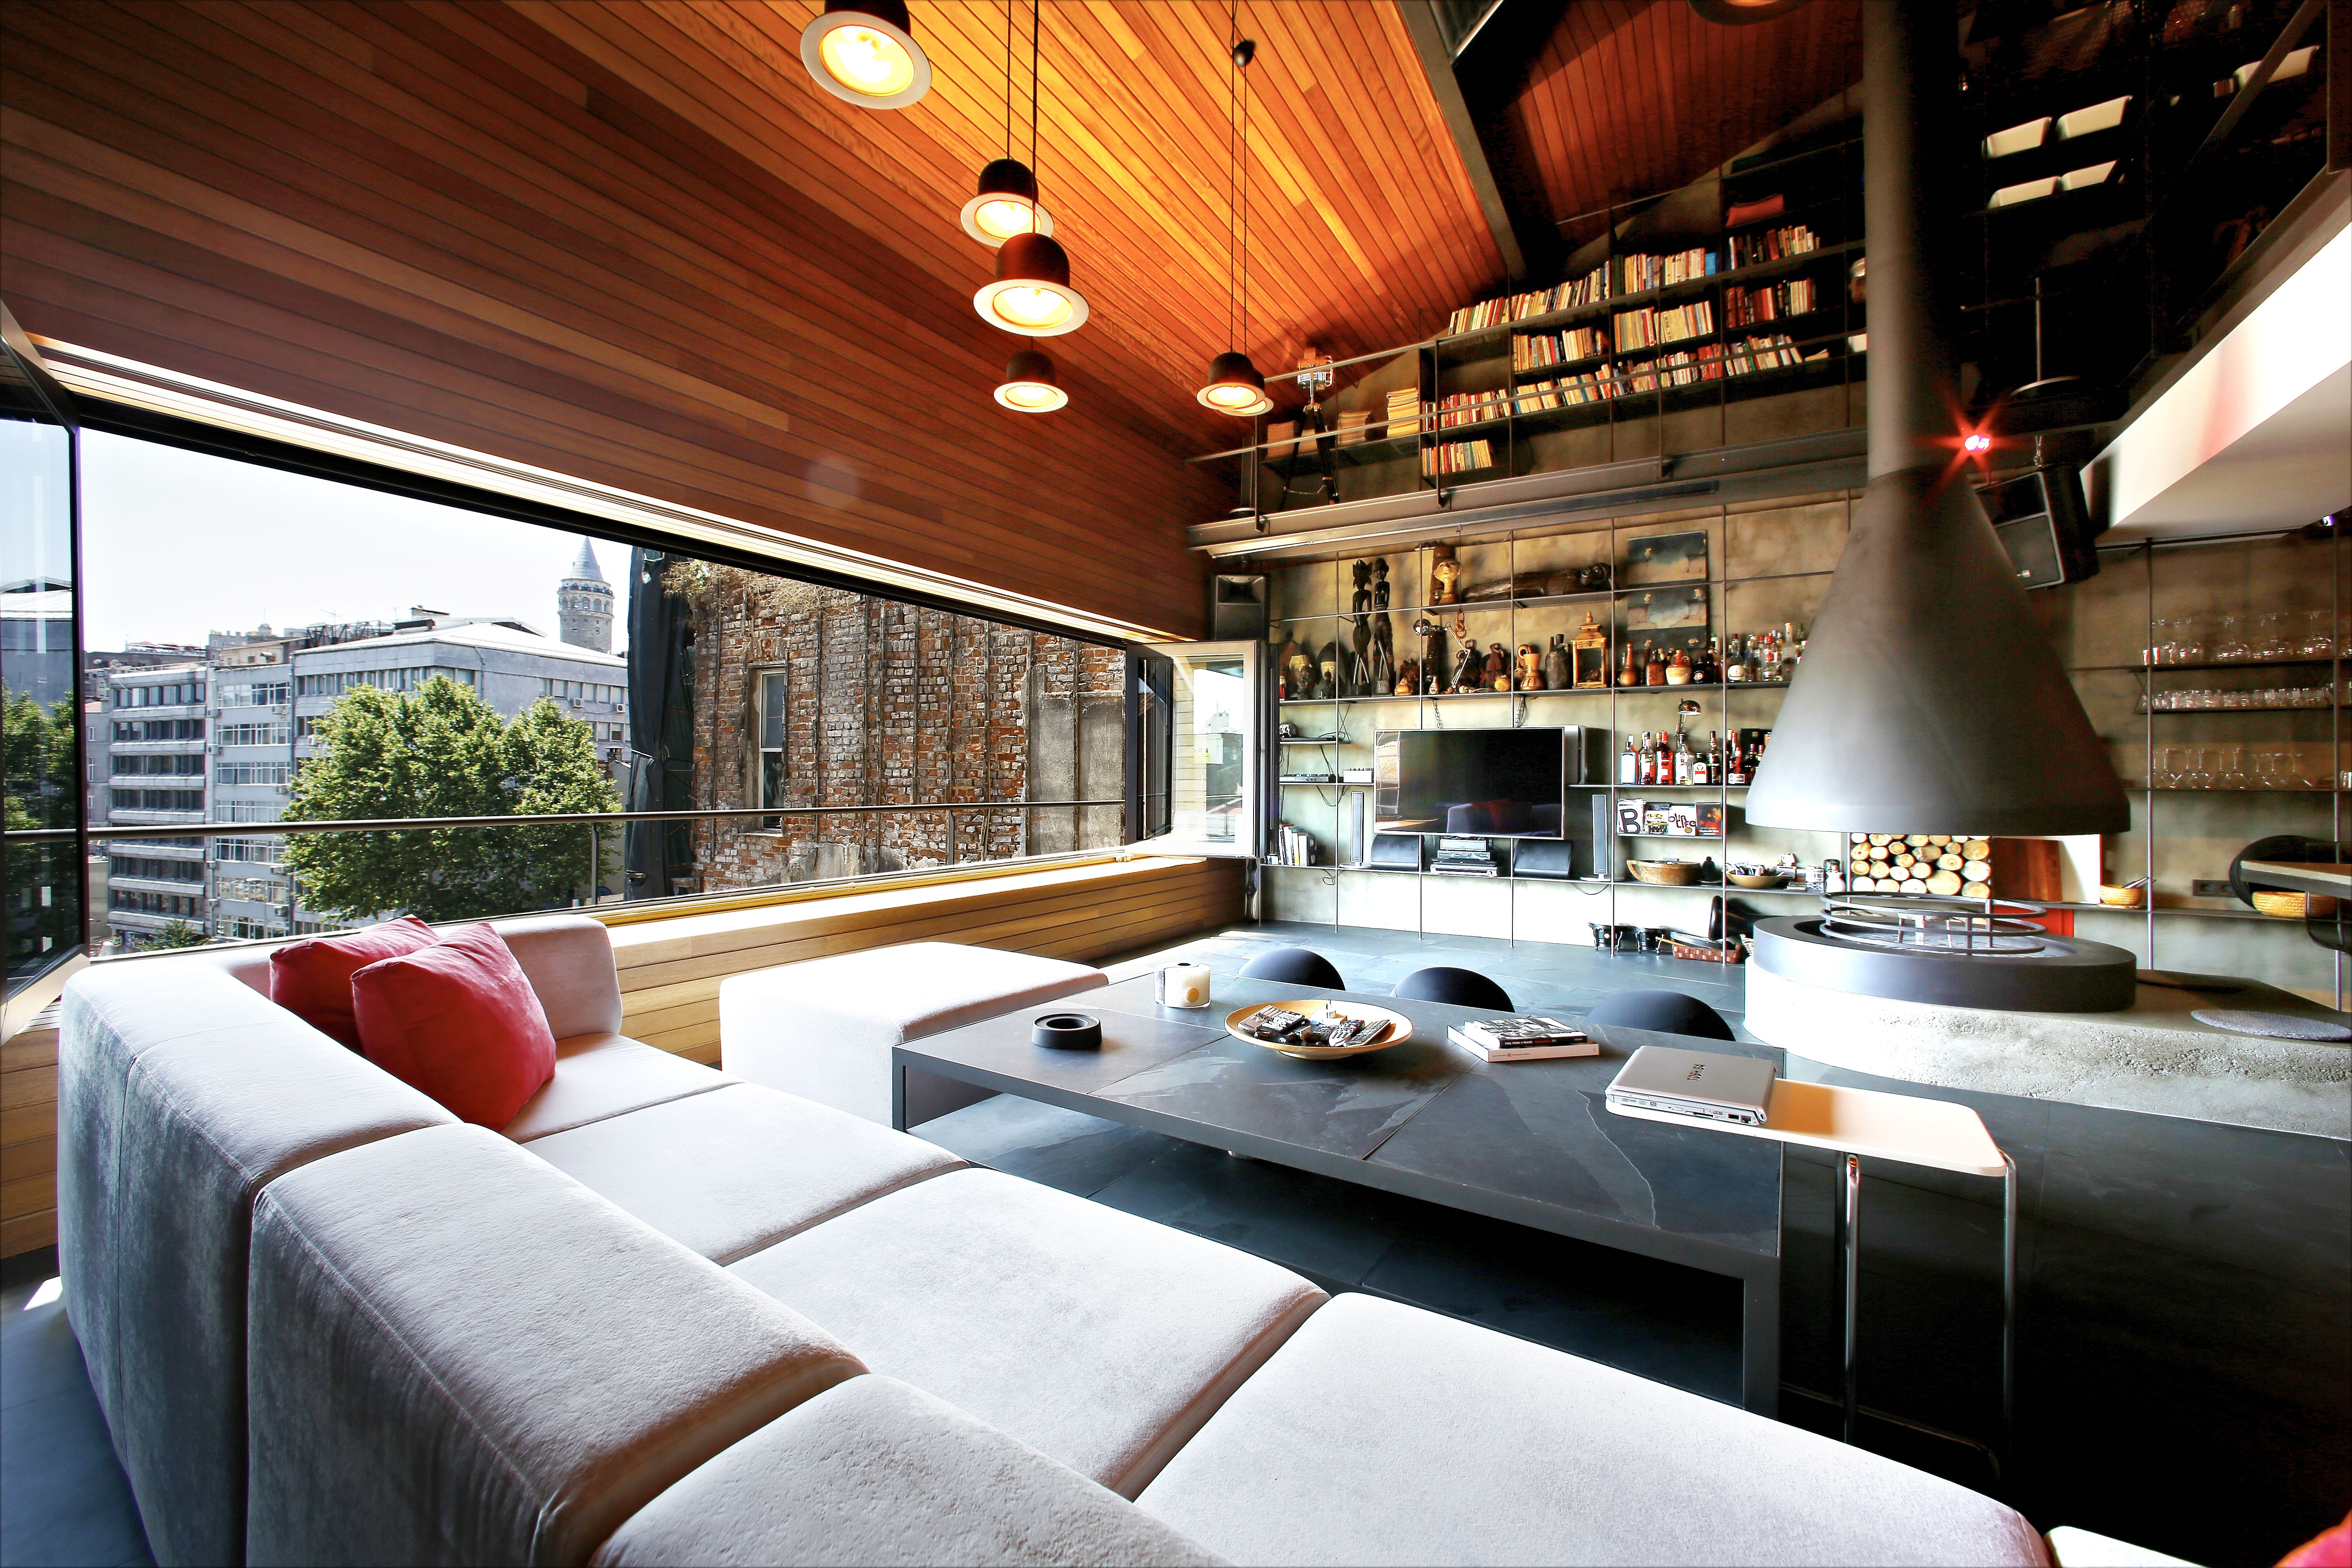 7 Spacious, Uncluttered Lofts